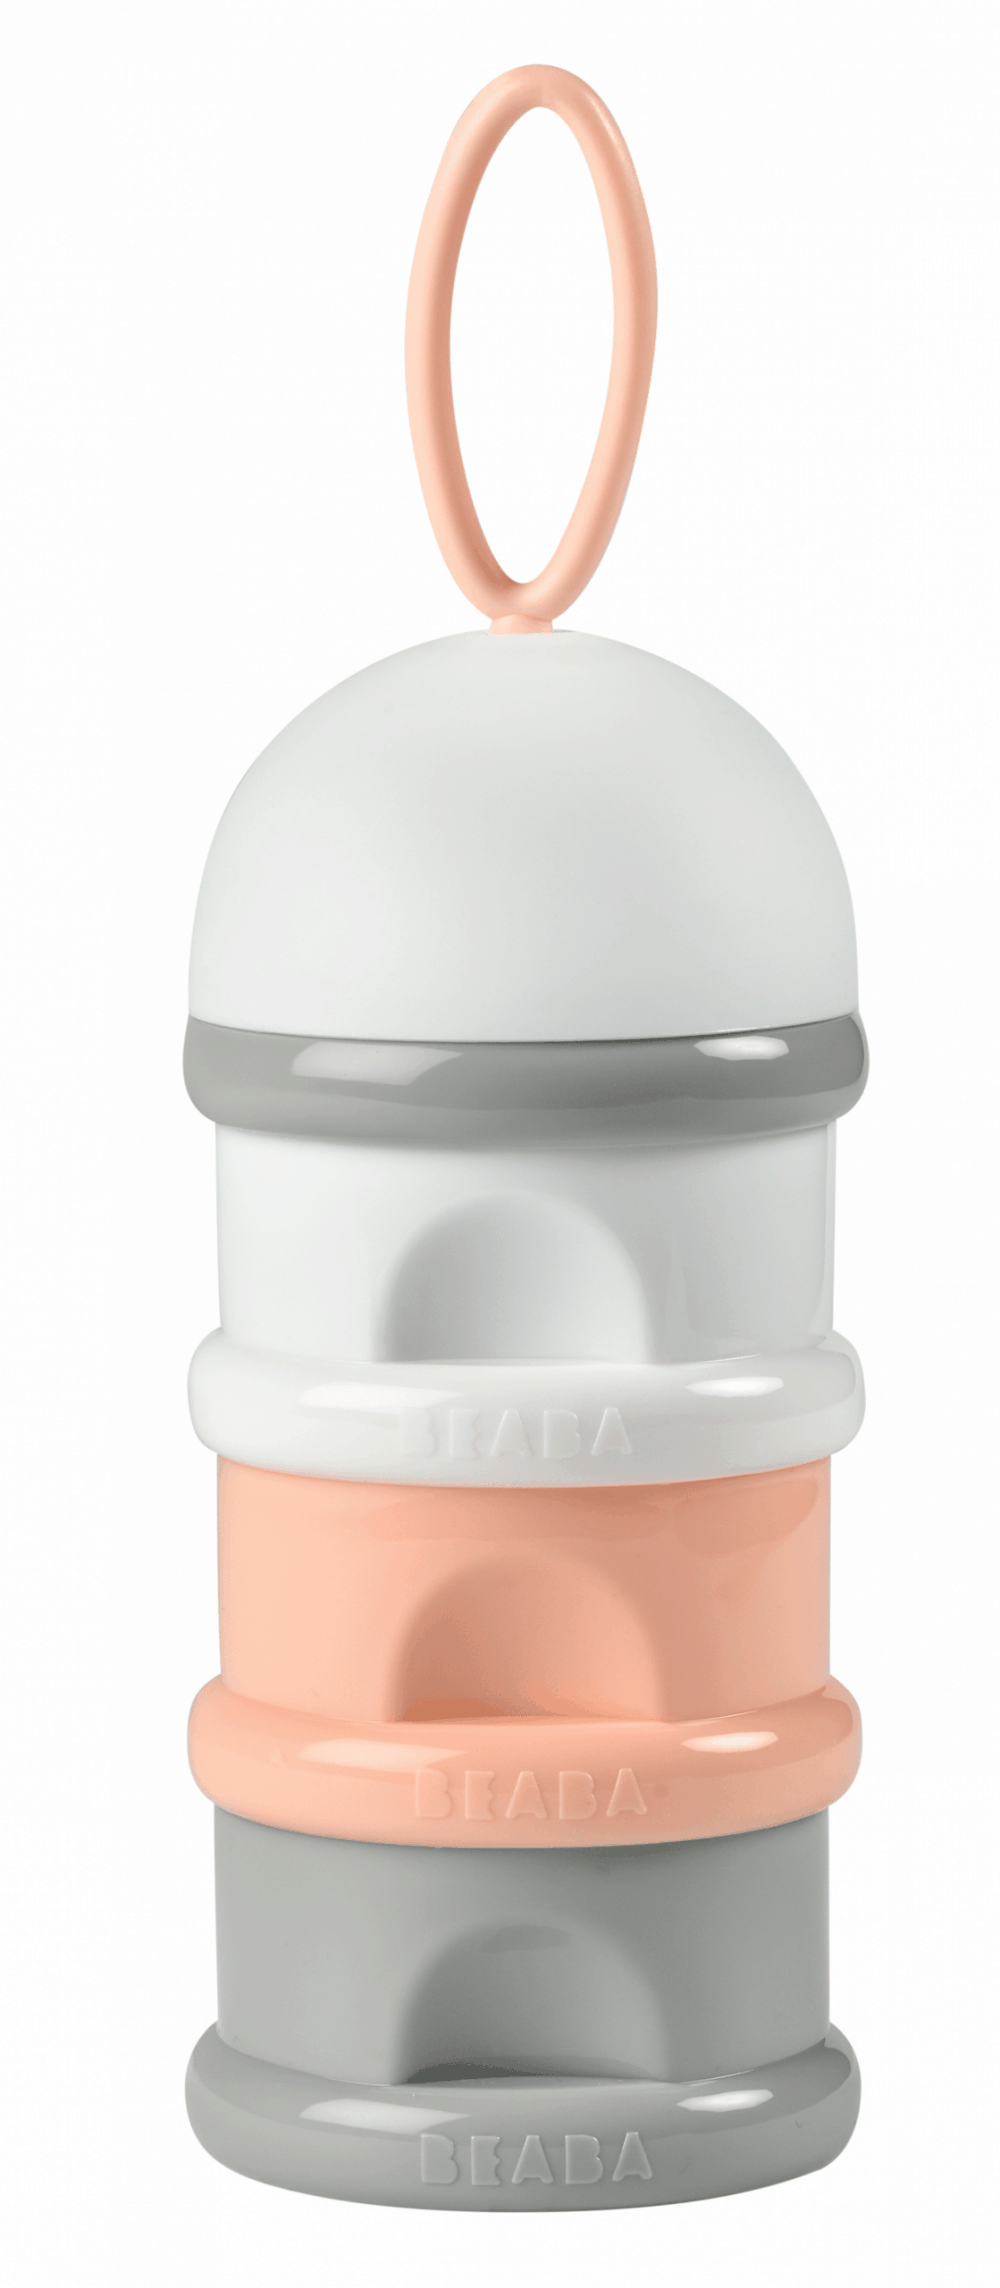 Beaba Formula Snack Container in Blush